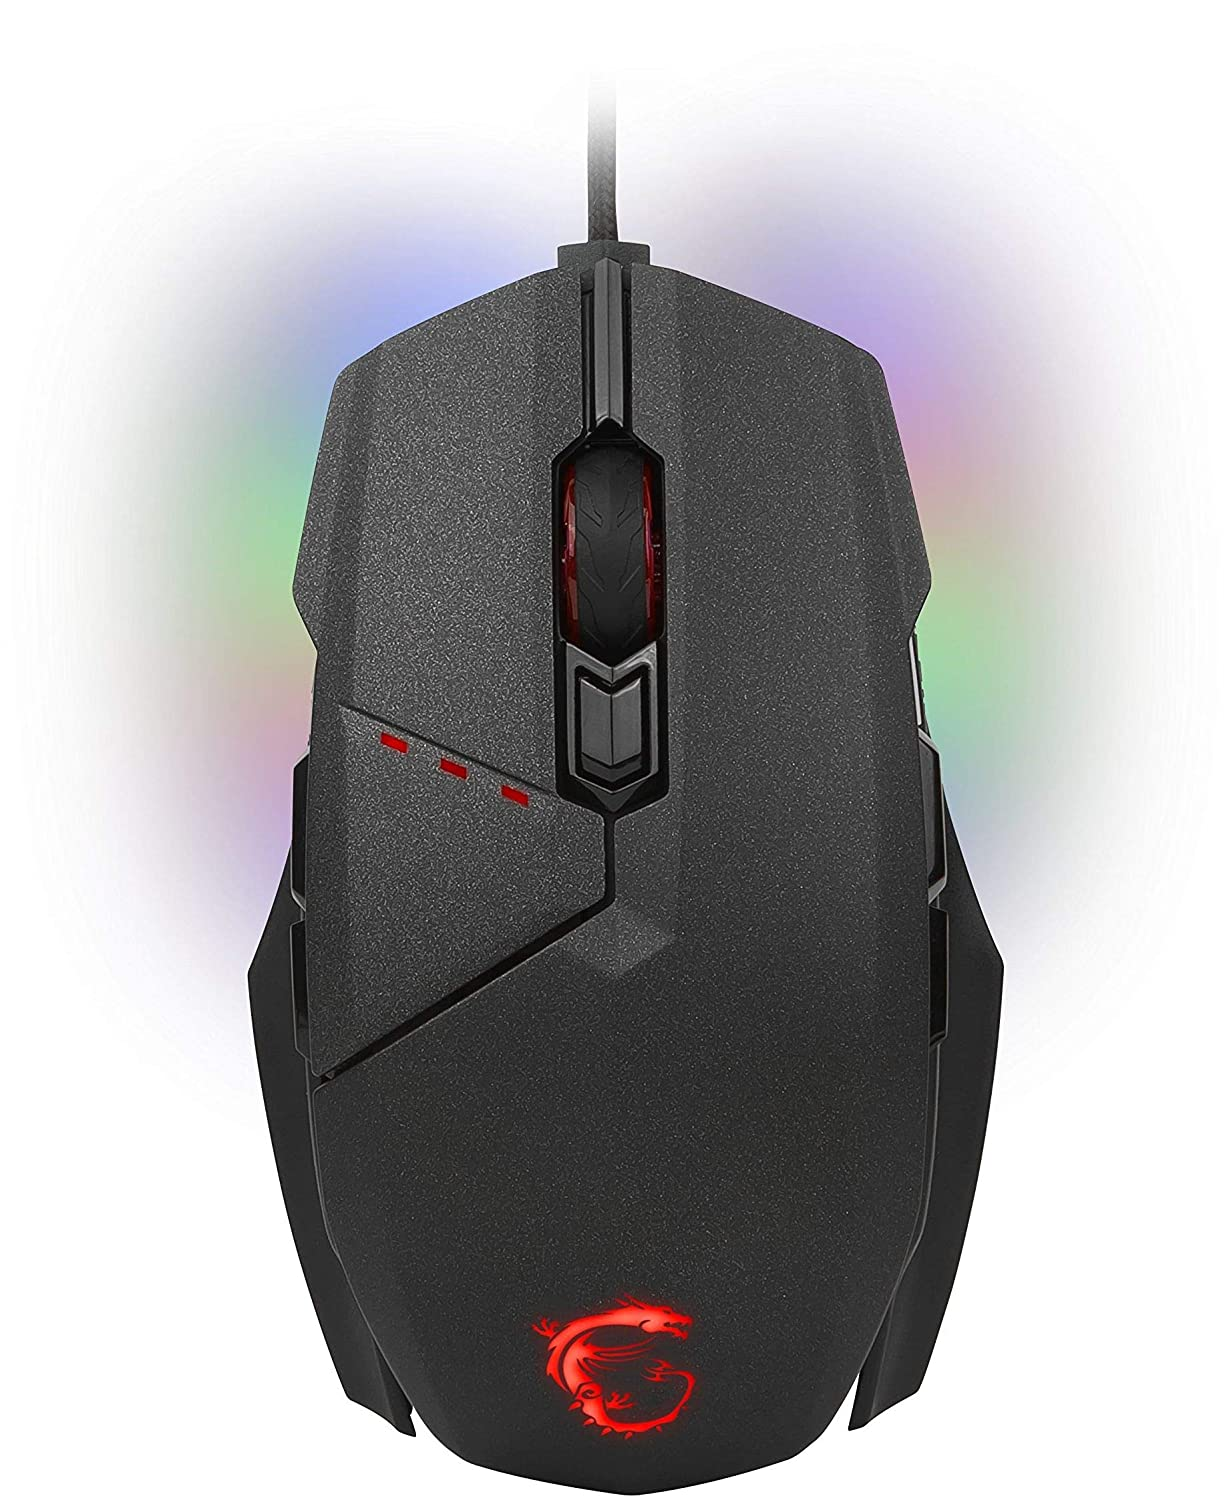 Gamdias Zeus P1 Optical Mouse With 12000 Dpi All About Techno Compare Similar Items